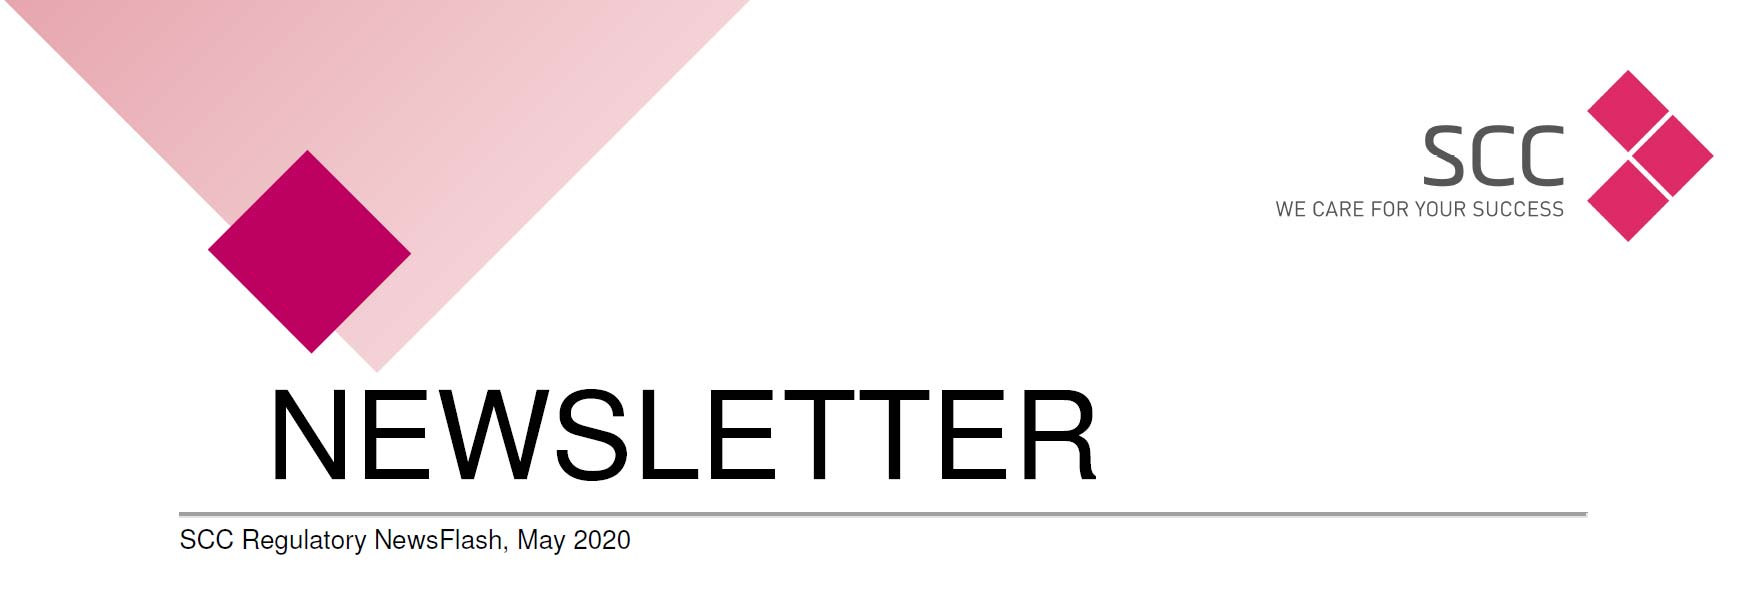 NL NewsFlash Letterhead 2020 05